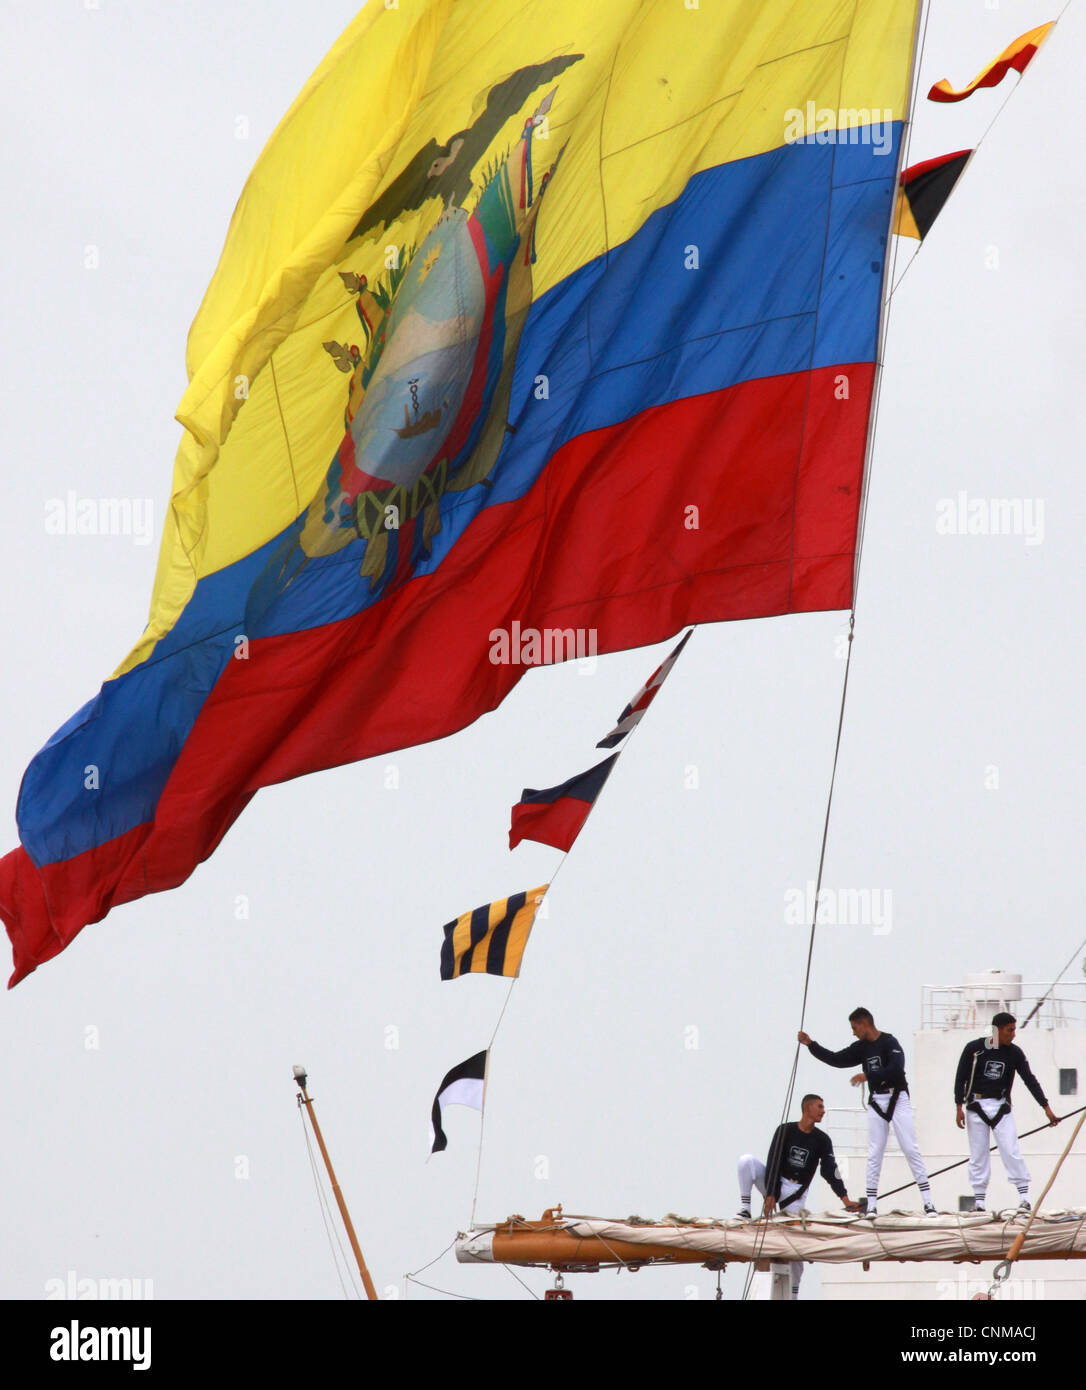 Ecuadorian sailors of the Ecuadorian tall ship BAE Guayas man the yardarms as they arrive in New Orleans in conjunction - Stock Image